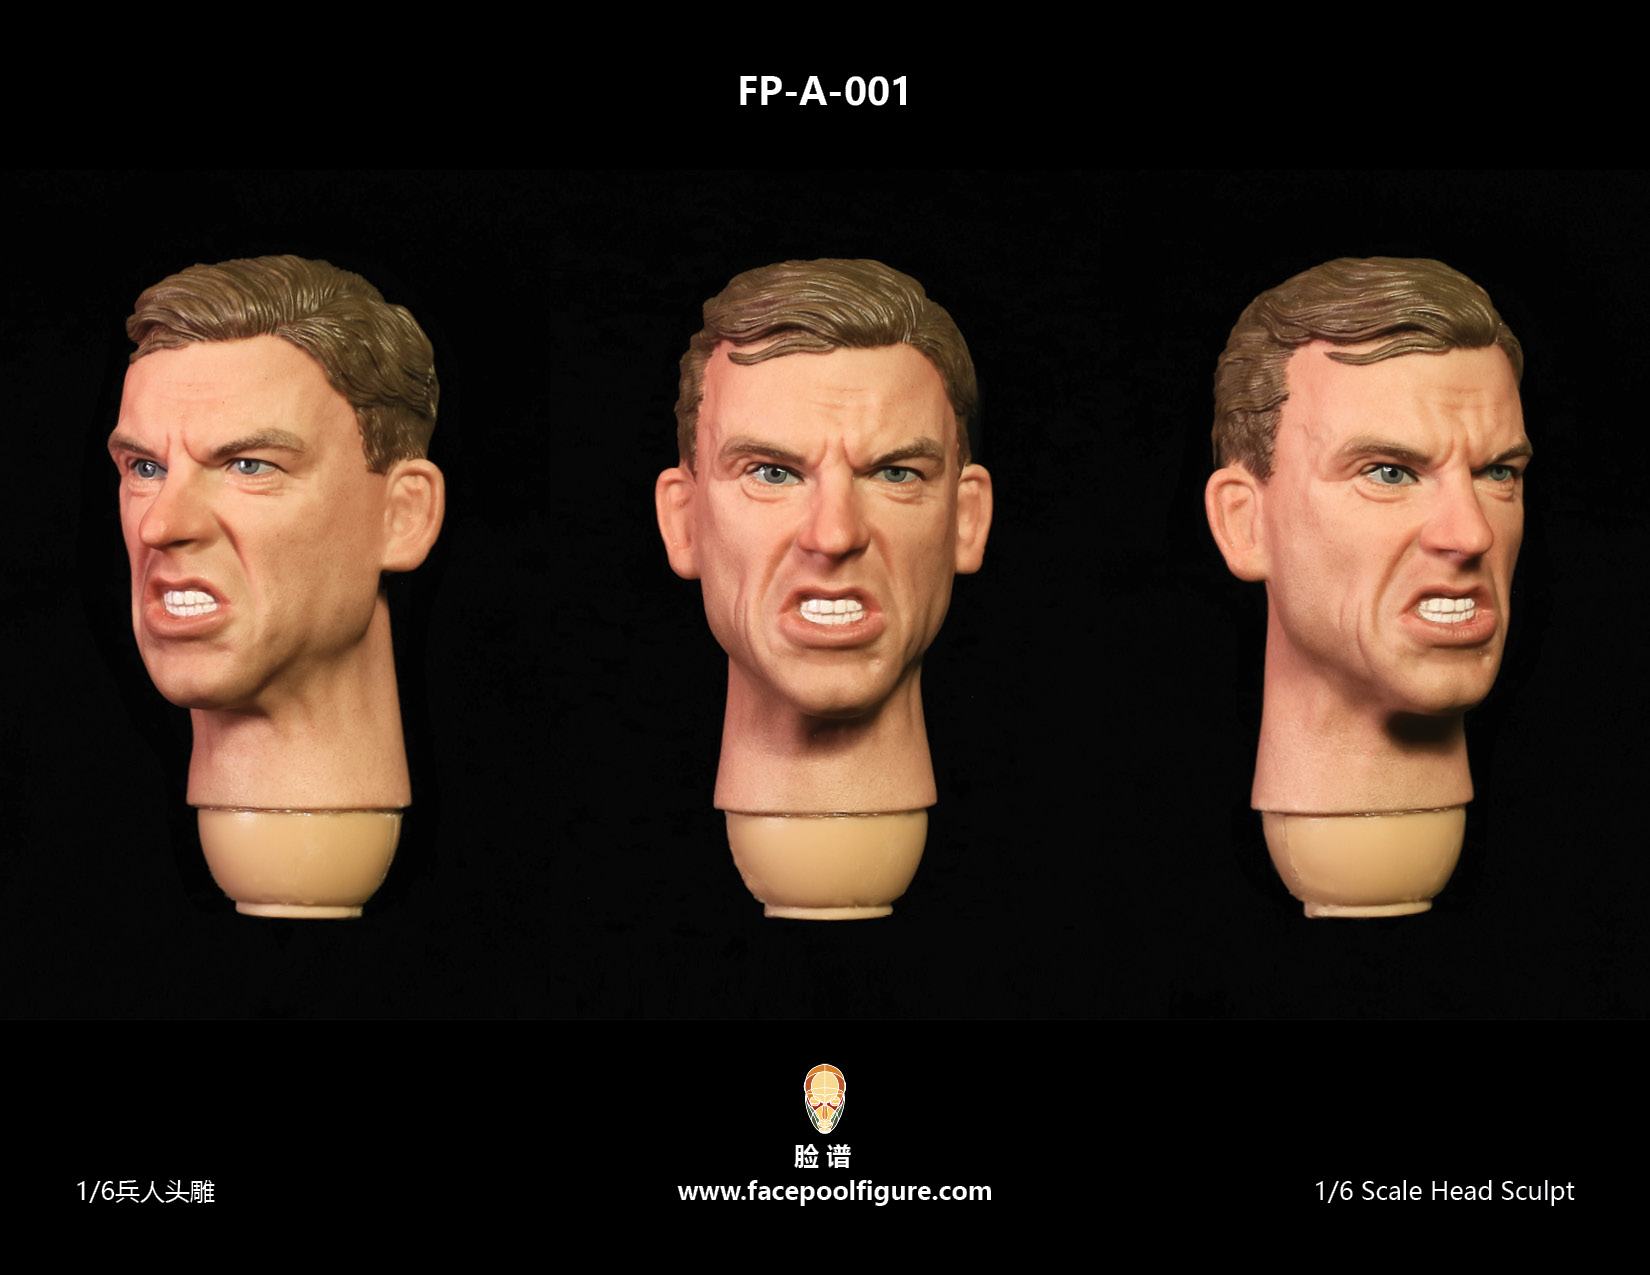 FacepoolFigure 1/6 Male Head Sculpt With Expression FP-A-001